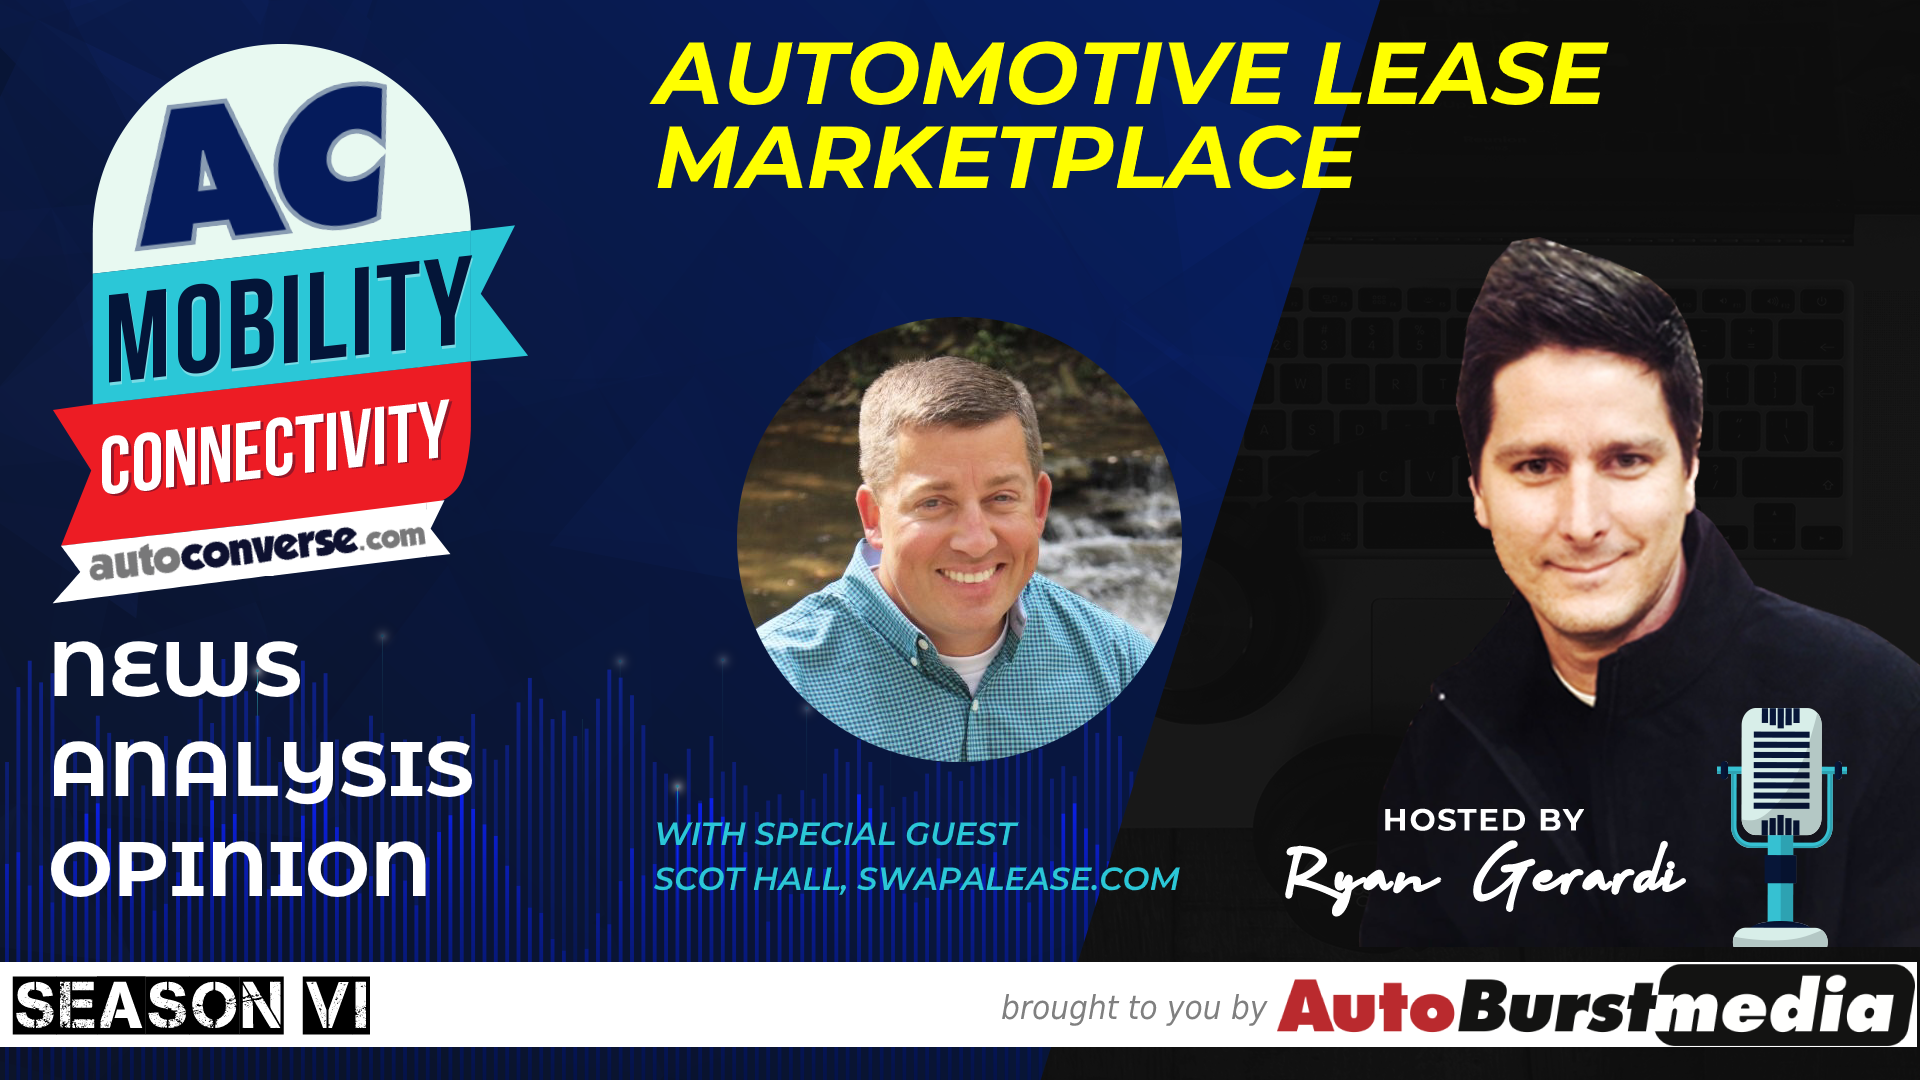 WED FEB 12. MTC Show. Automotive Lease Marketplace Swapalease.com